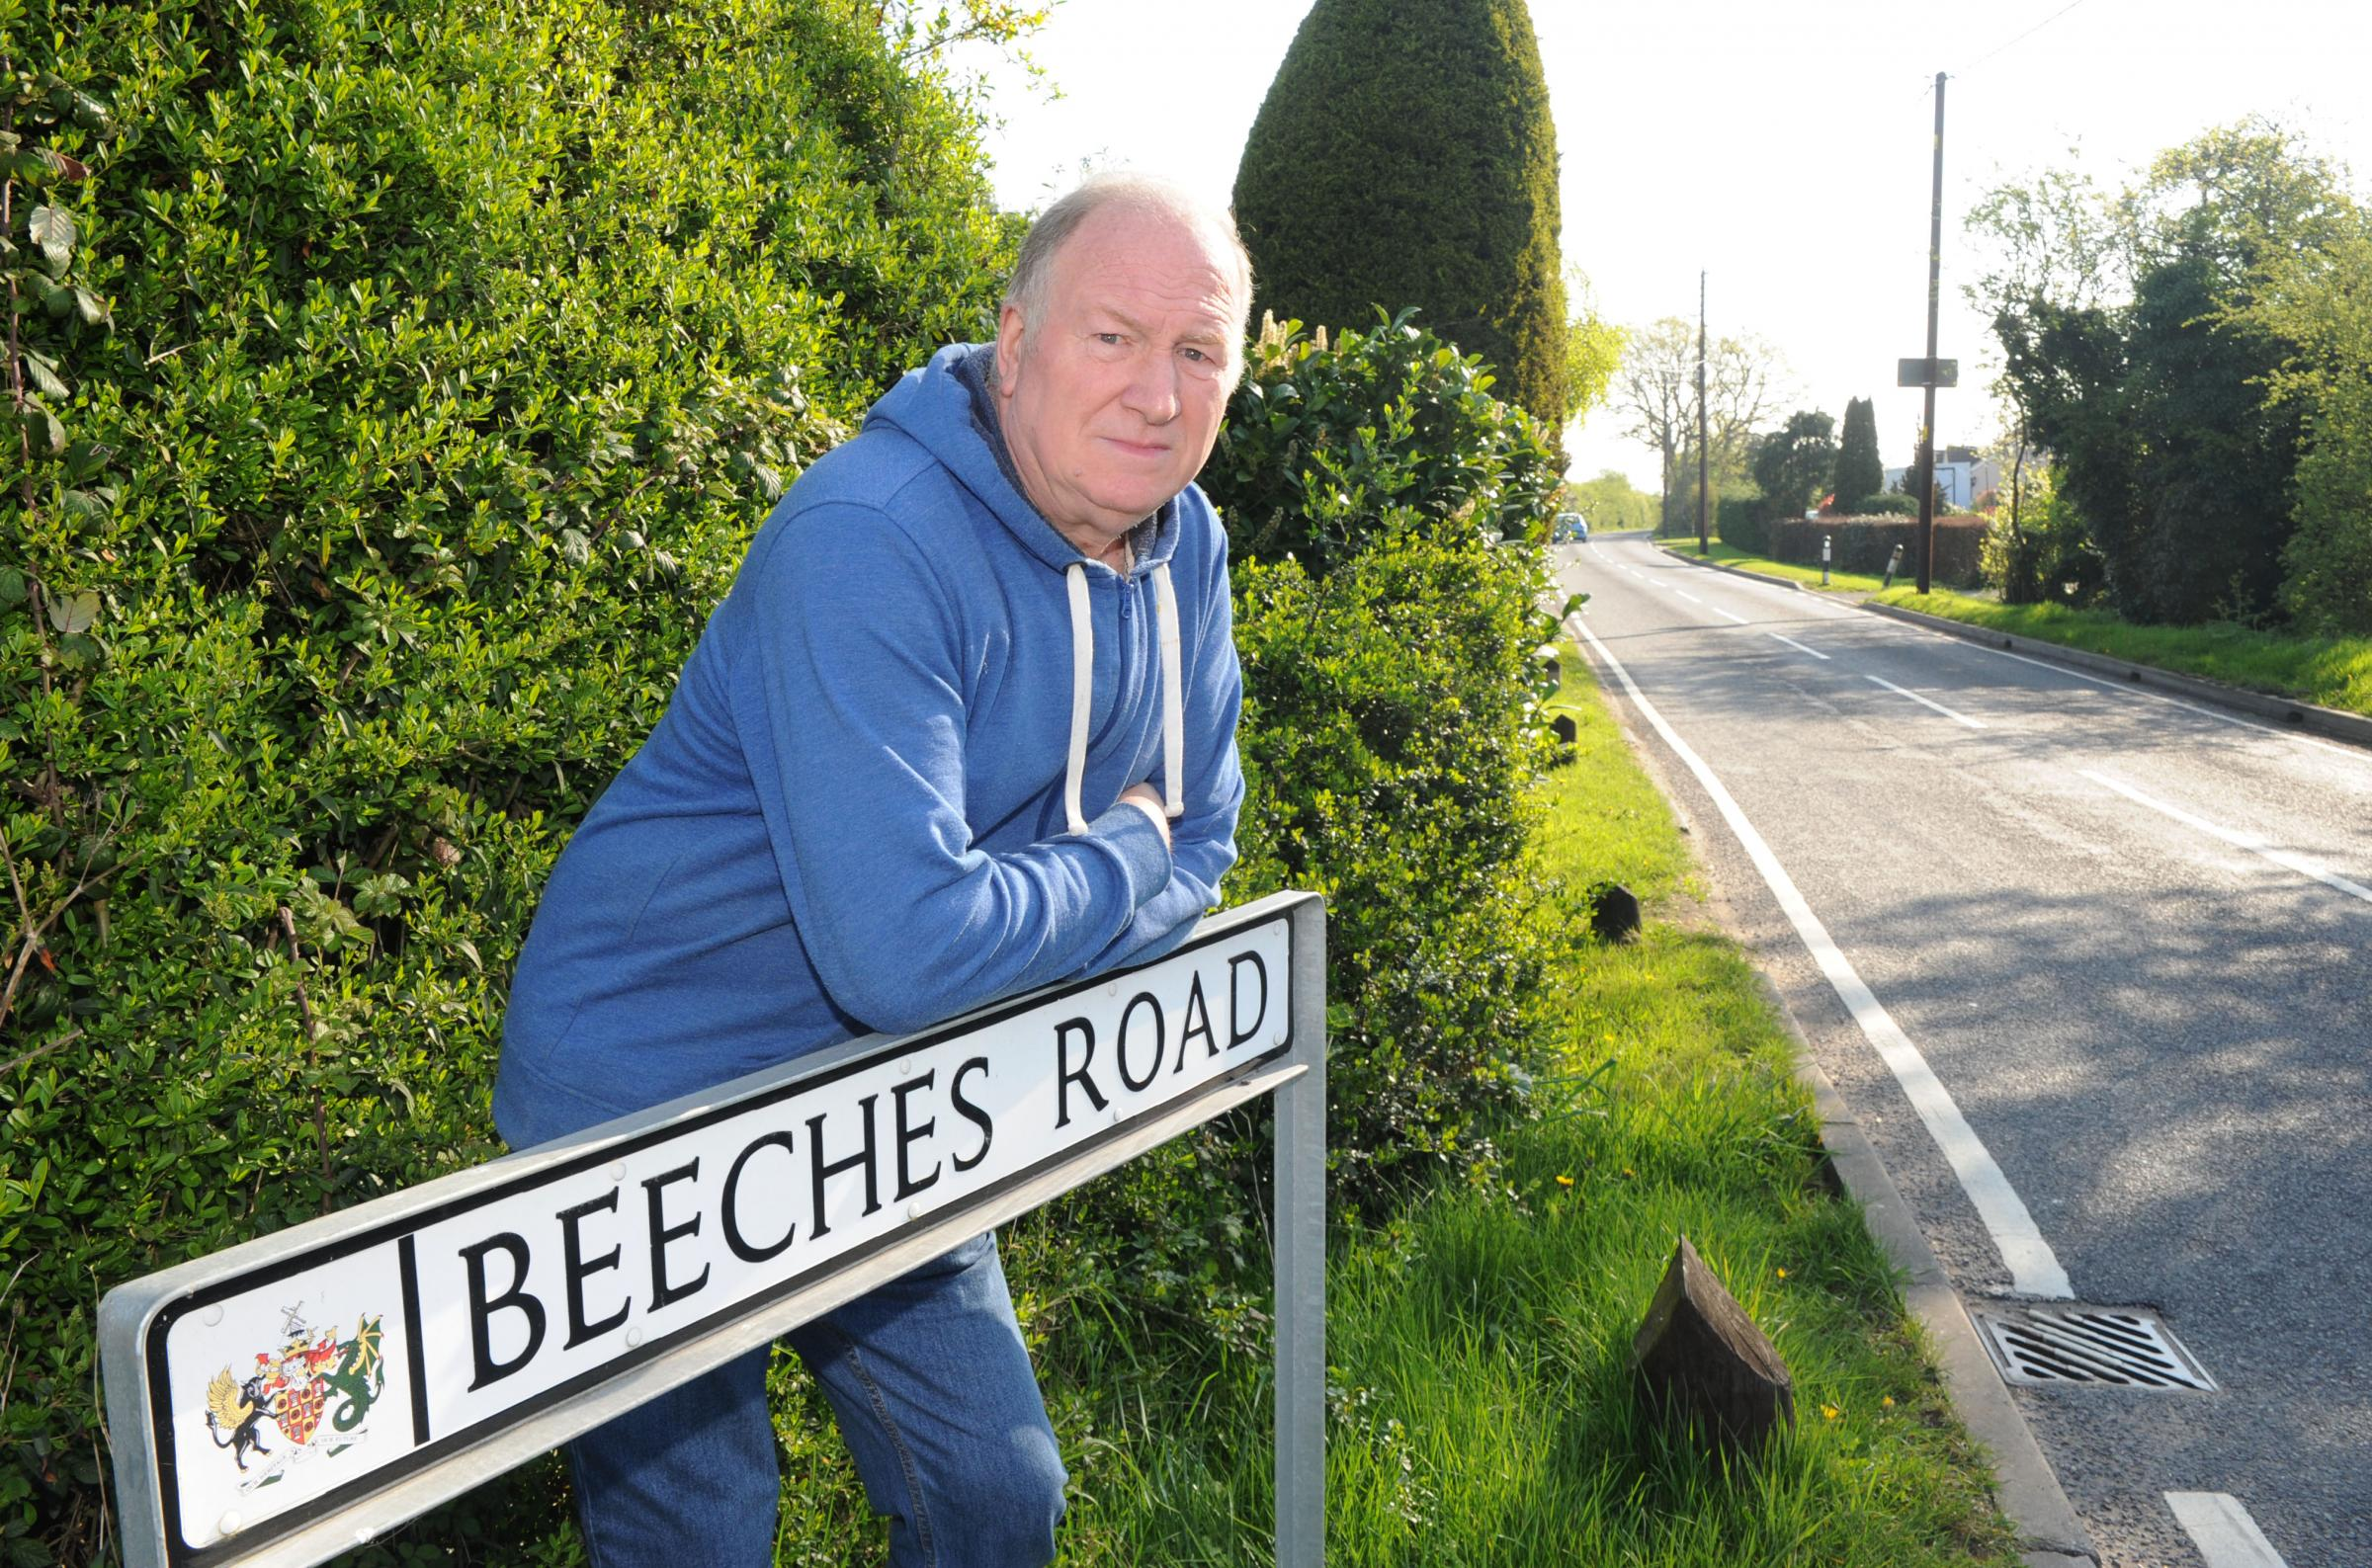 Silt concerns - Rawreth Flooding Action Group chairman Peter Plummer in Beeches Road